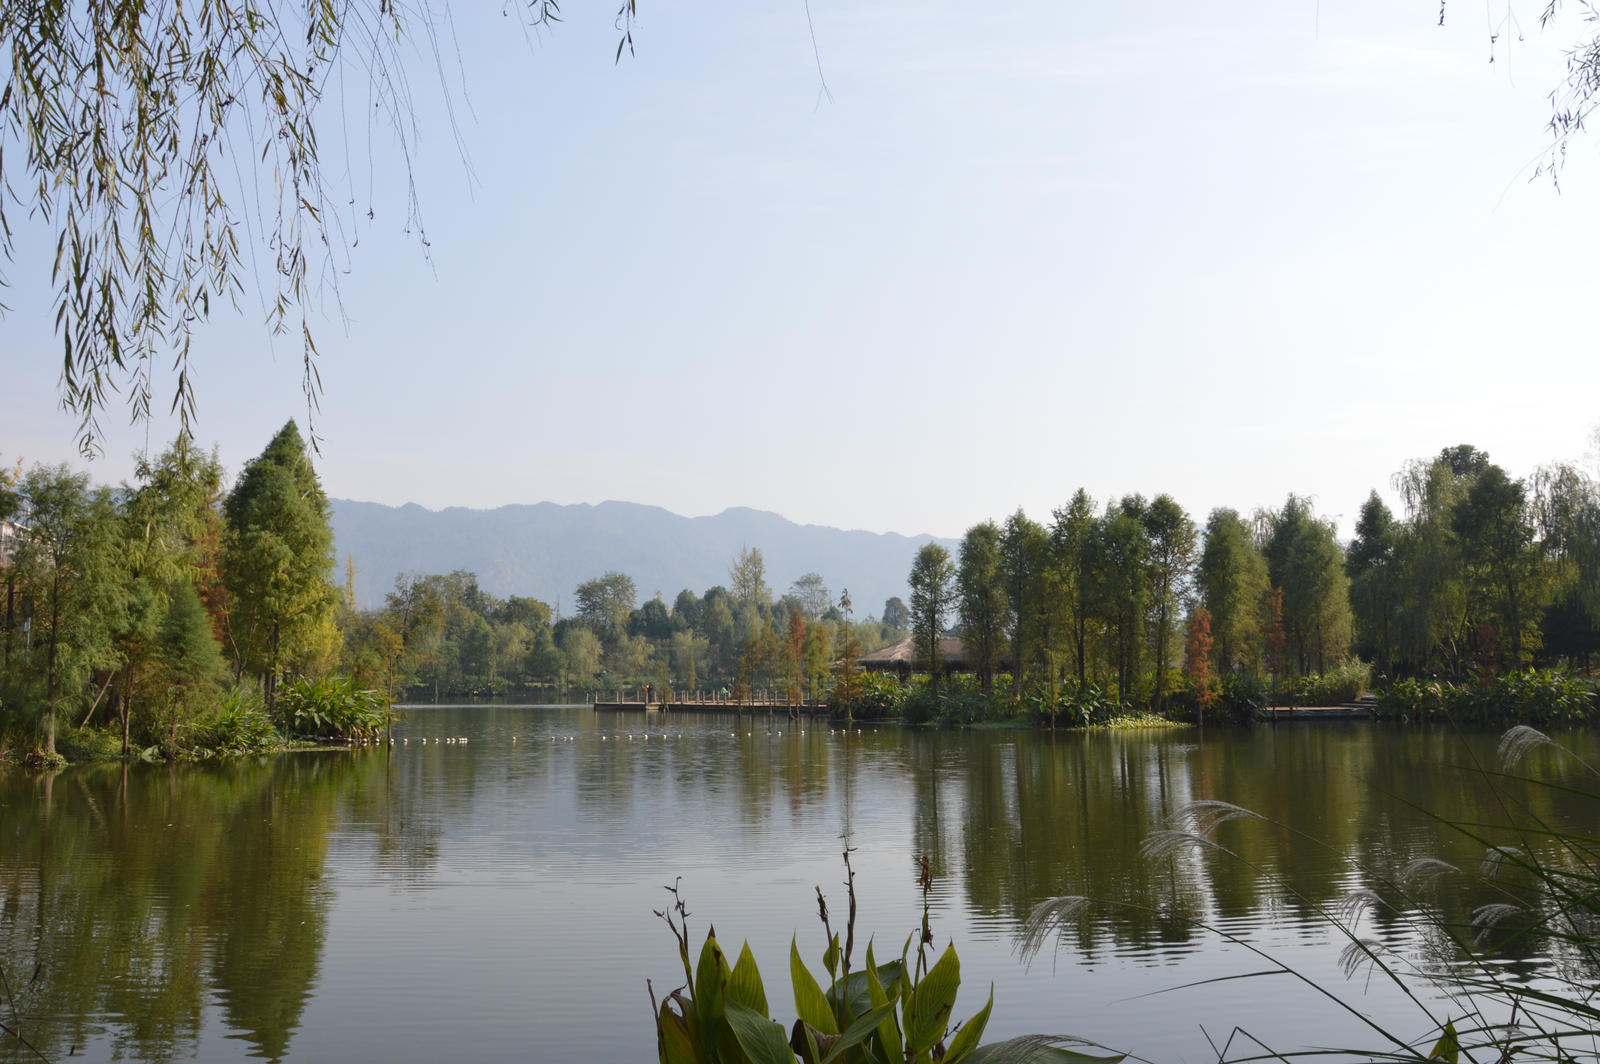 Lake in park by nismoz